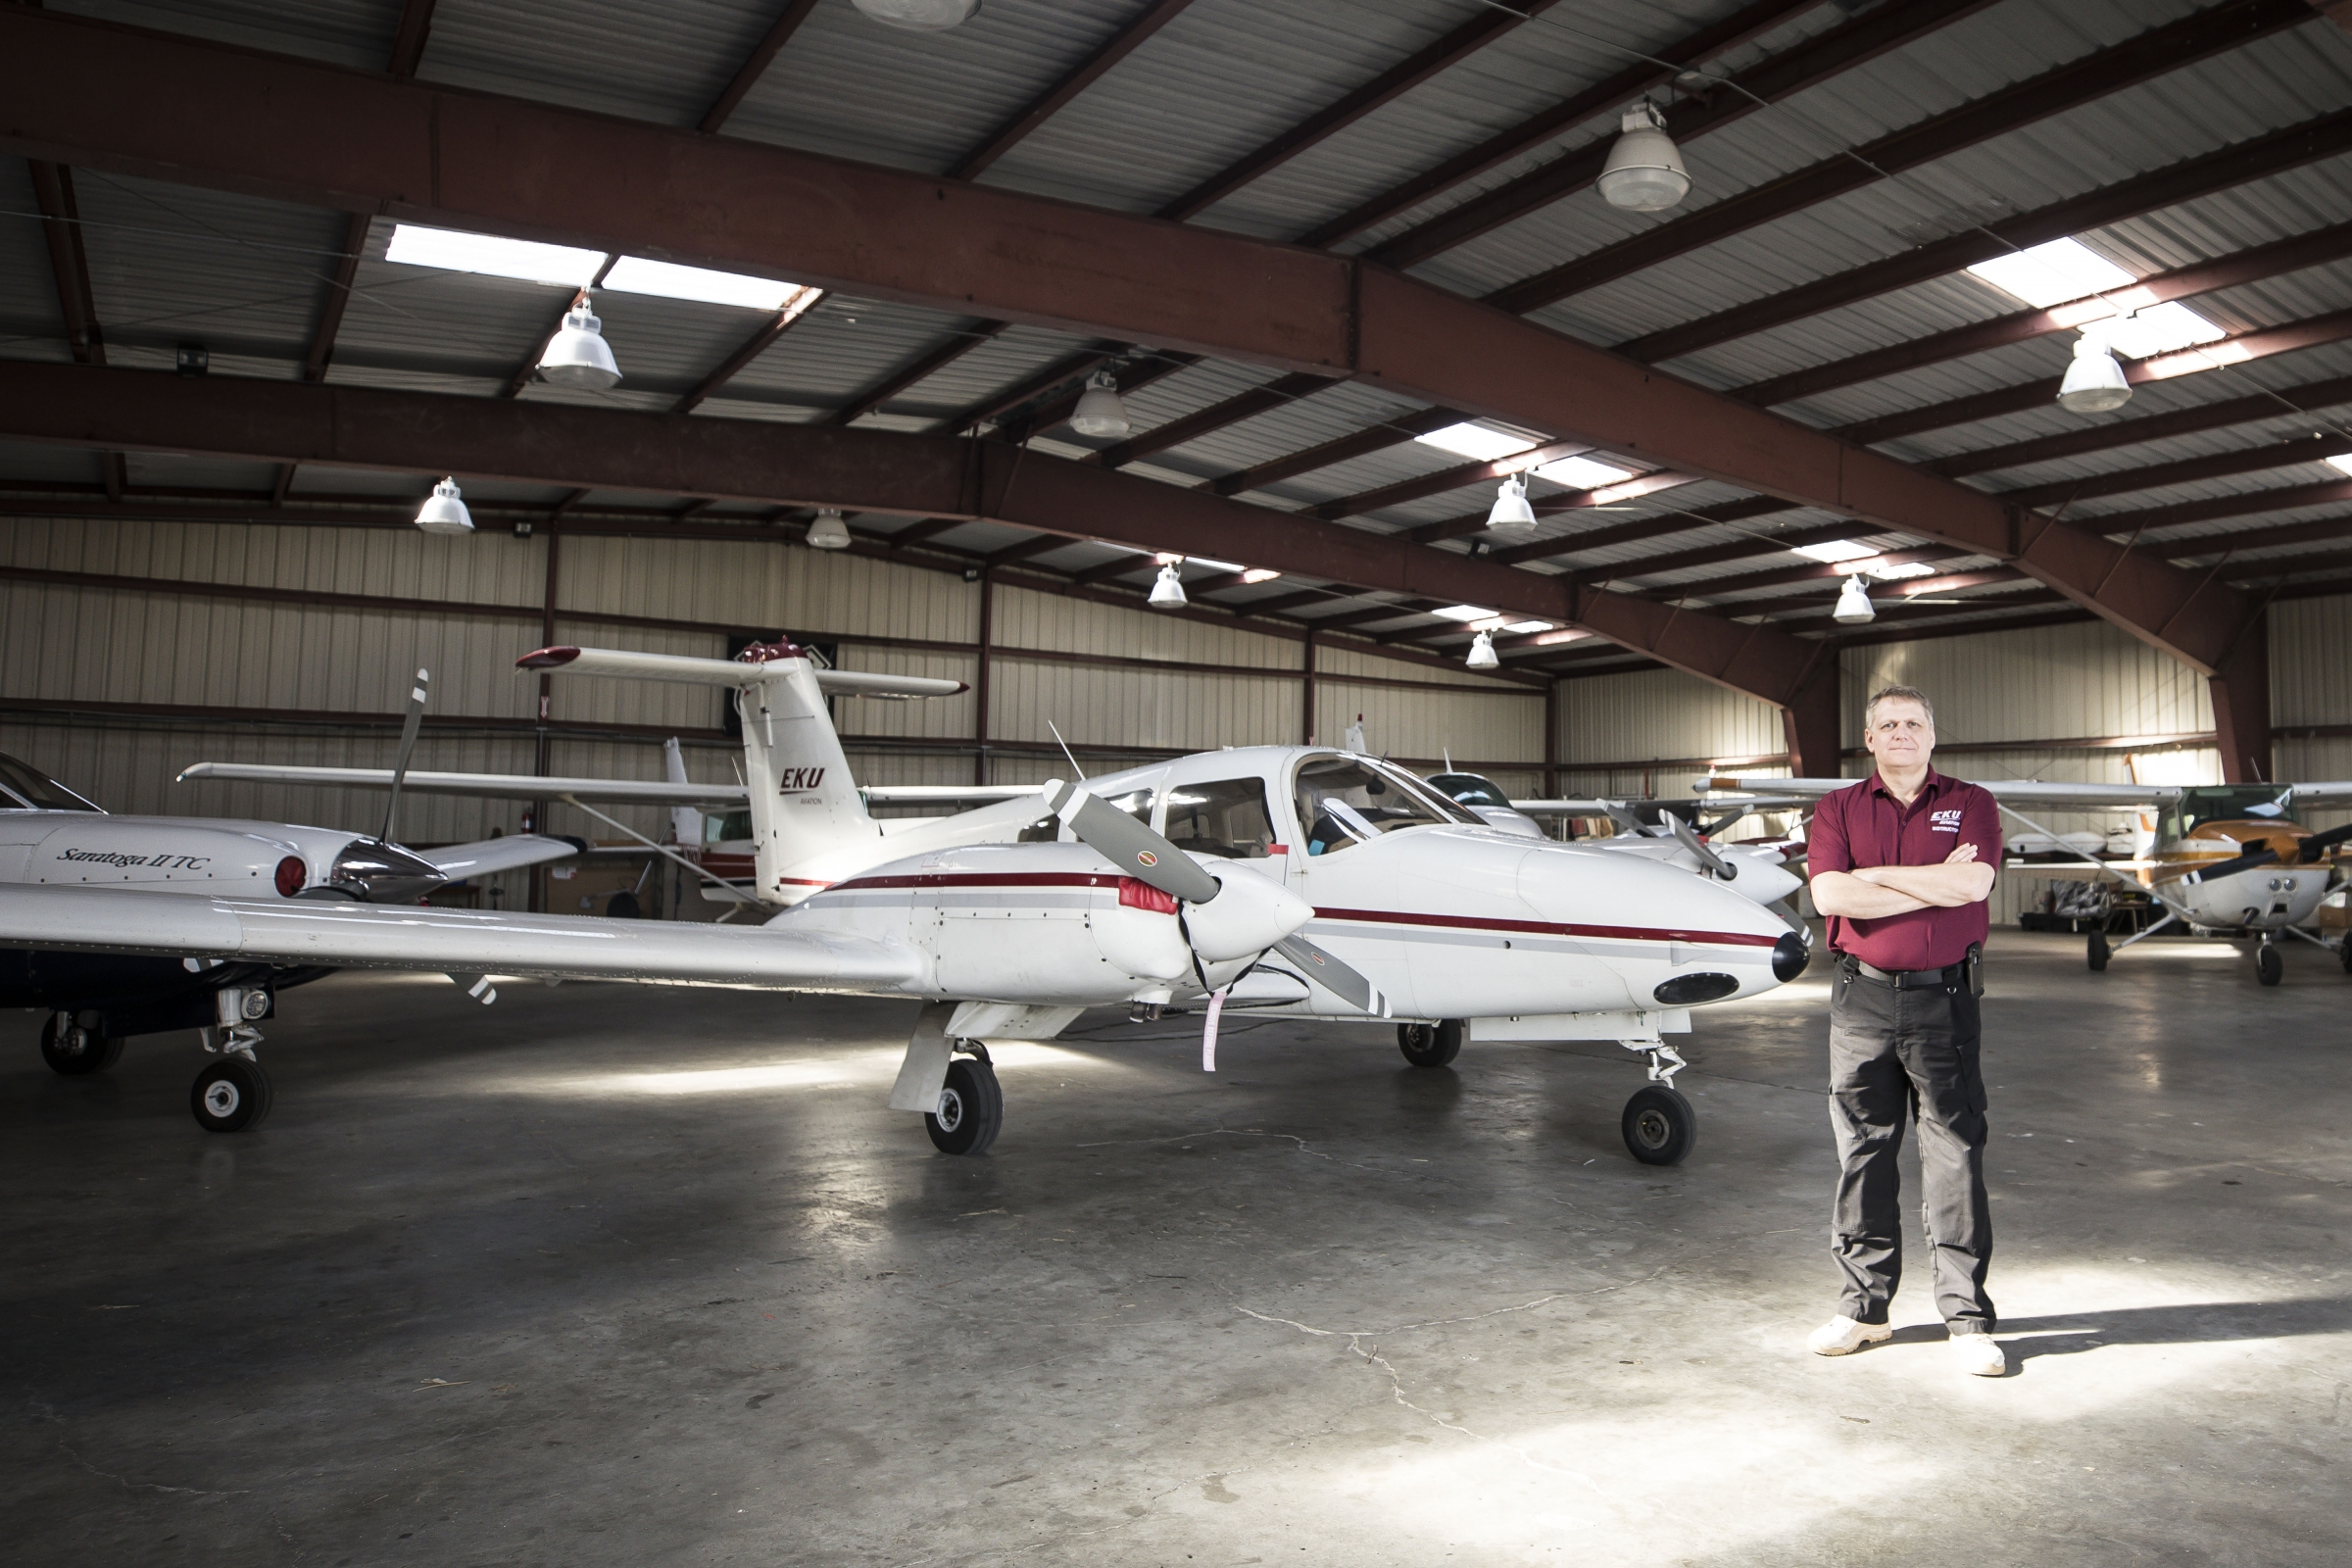 Sean Howard stands in front of an airplane in hanger.